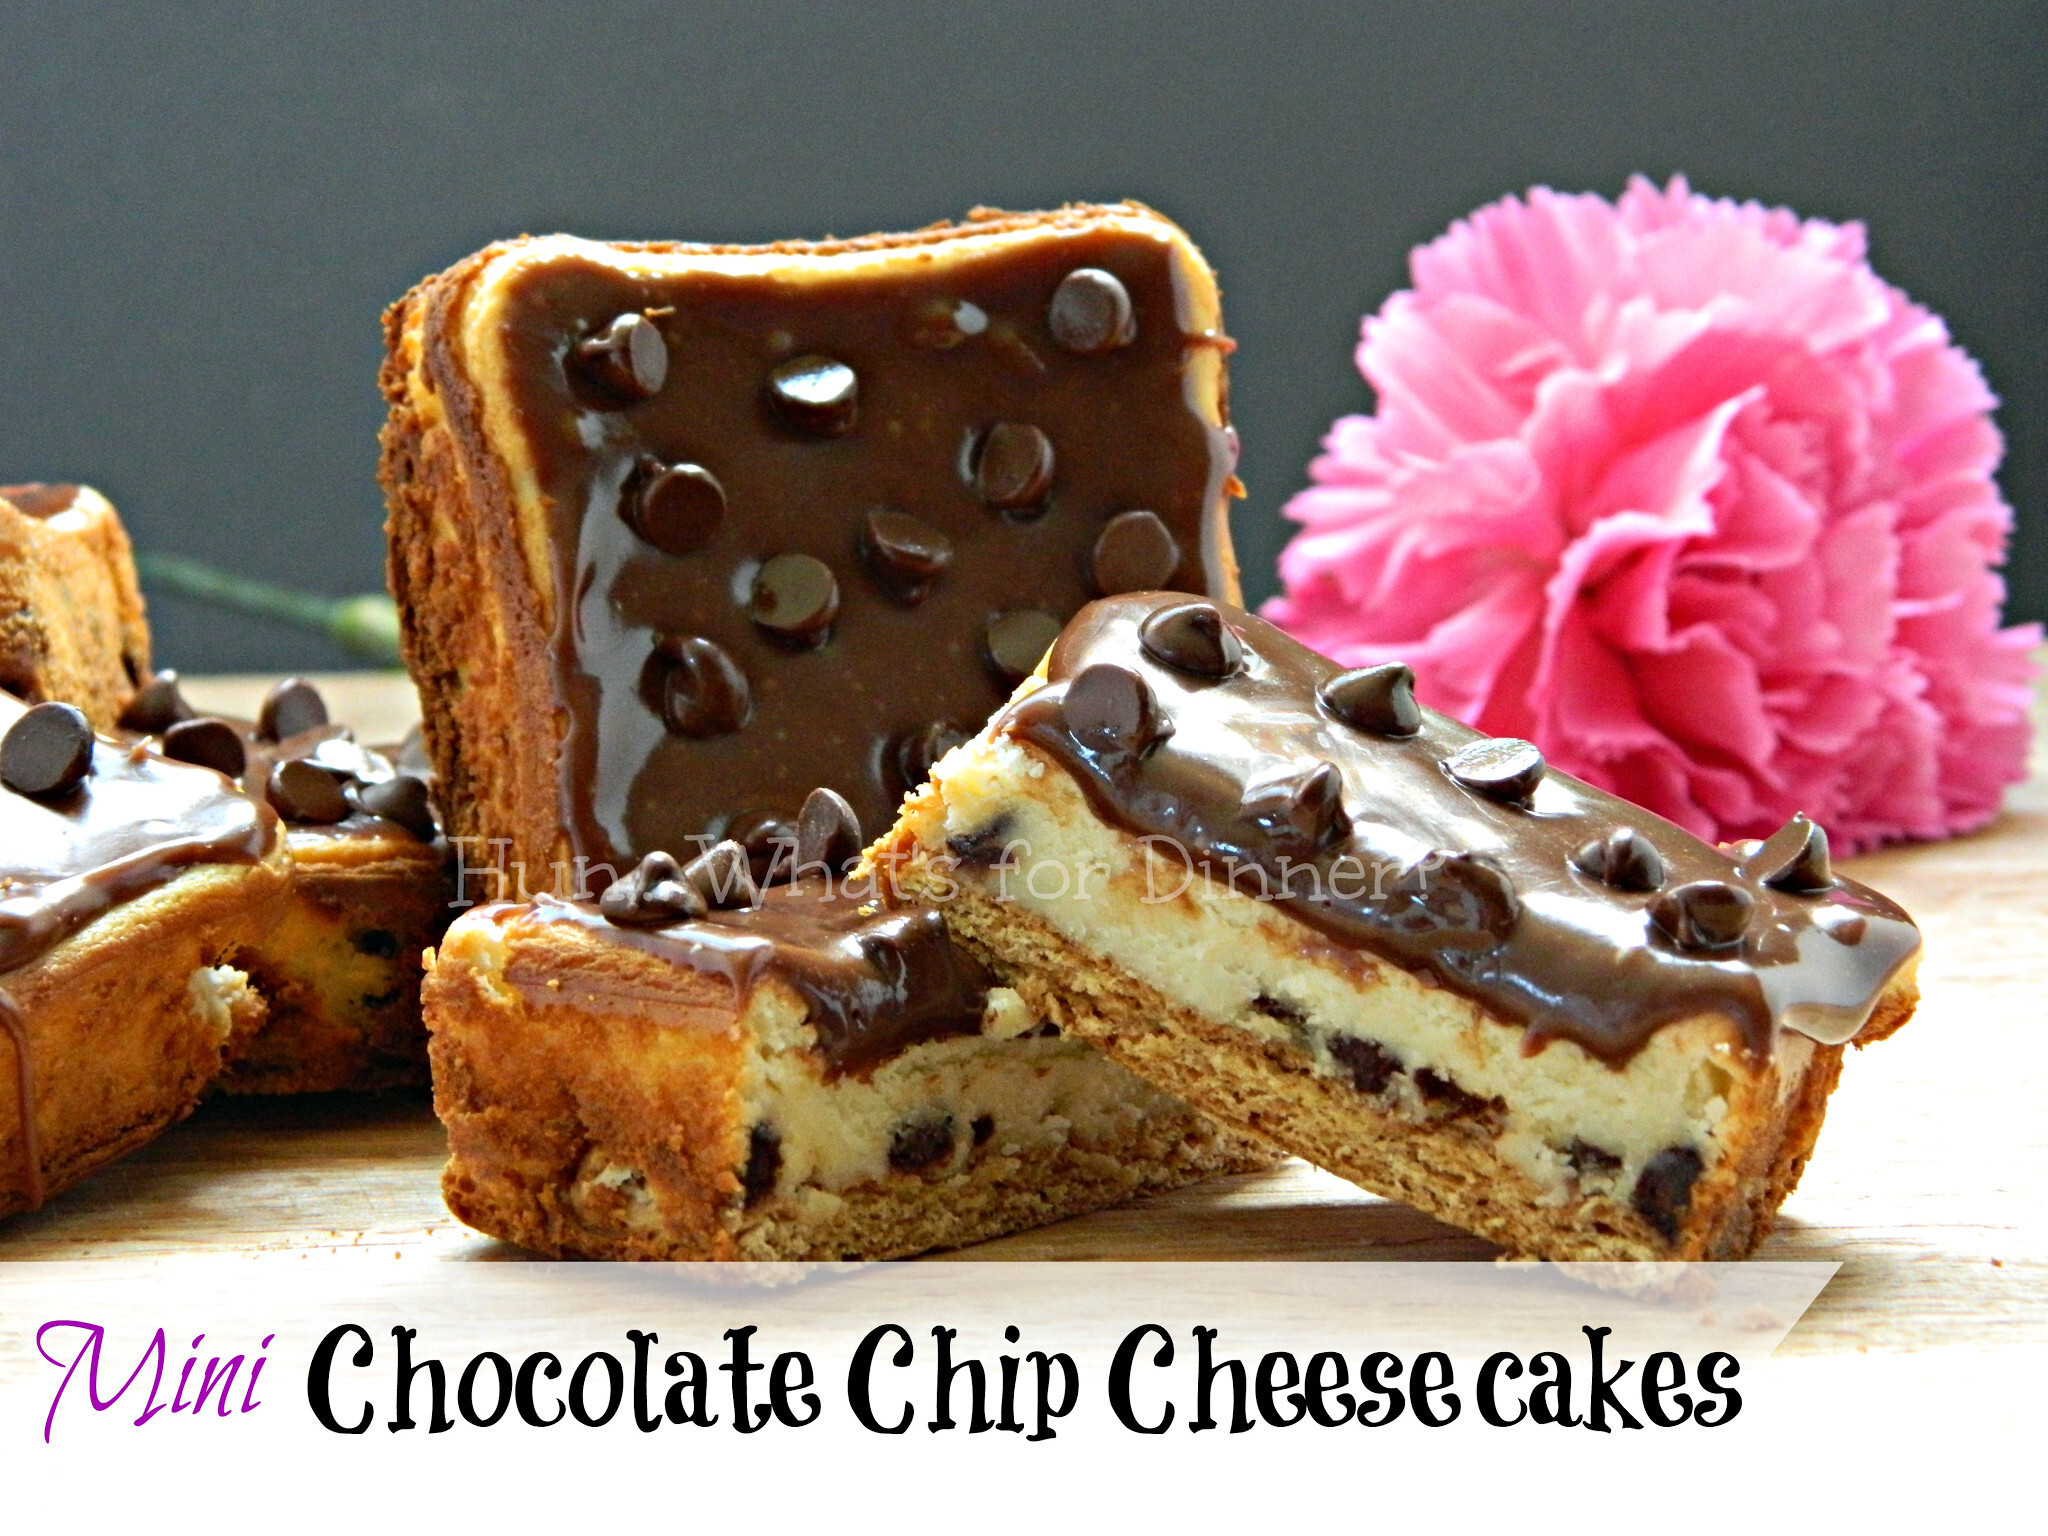 Mini Chocolate Chip Cheesecake